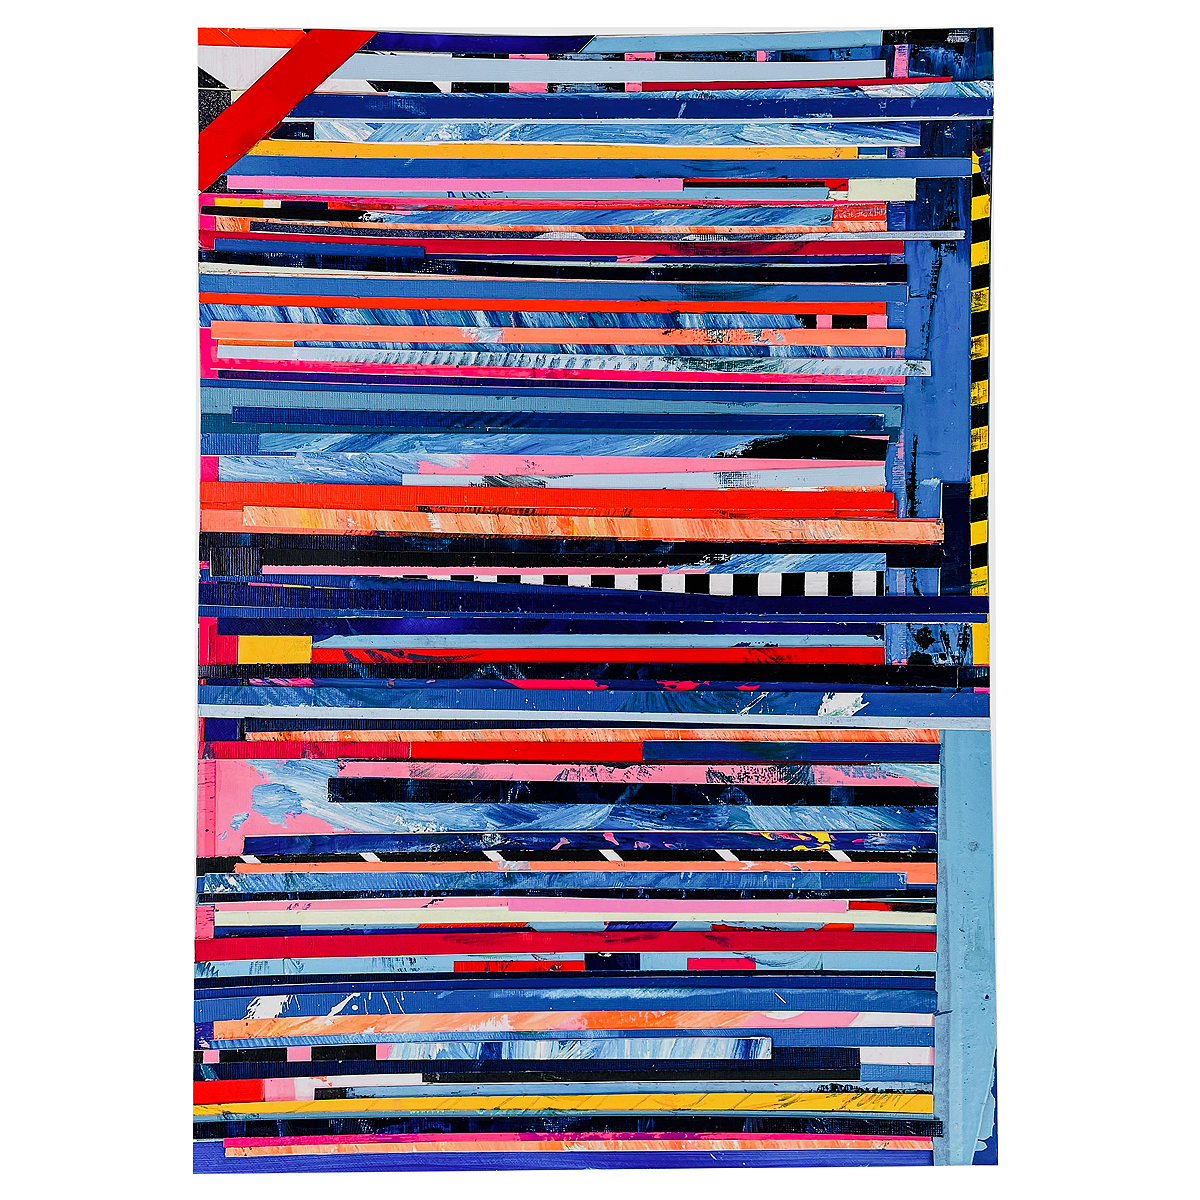 """This is a one-of-a-kind artwork by Robb Lejuwaan titled """"#71"""" It made up of acrylic paint, spray paint, tape, paper, and graphite on heavy-duty paper. This work was completed in 2021 and is available for sale on this page."""